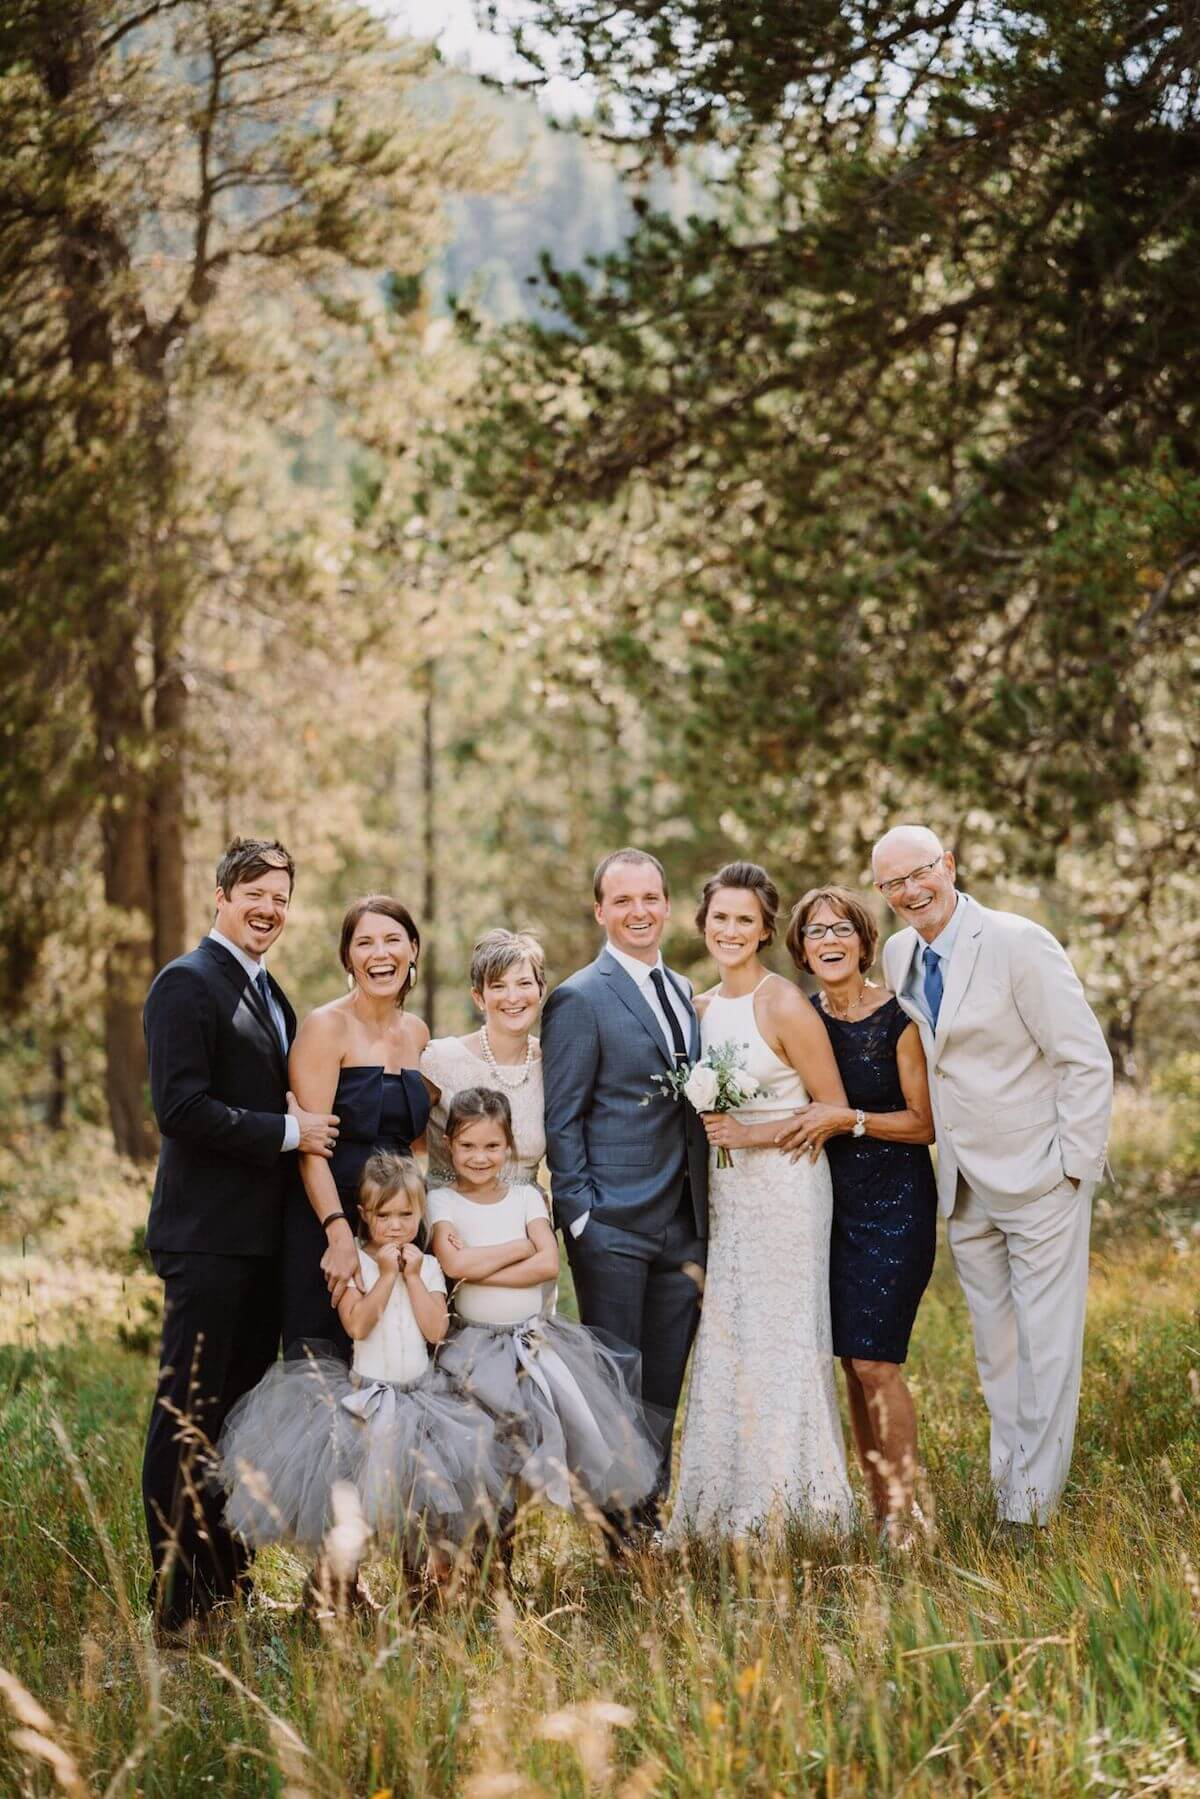 Professional family photo with bride and groom